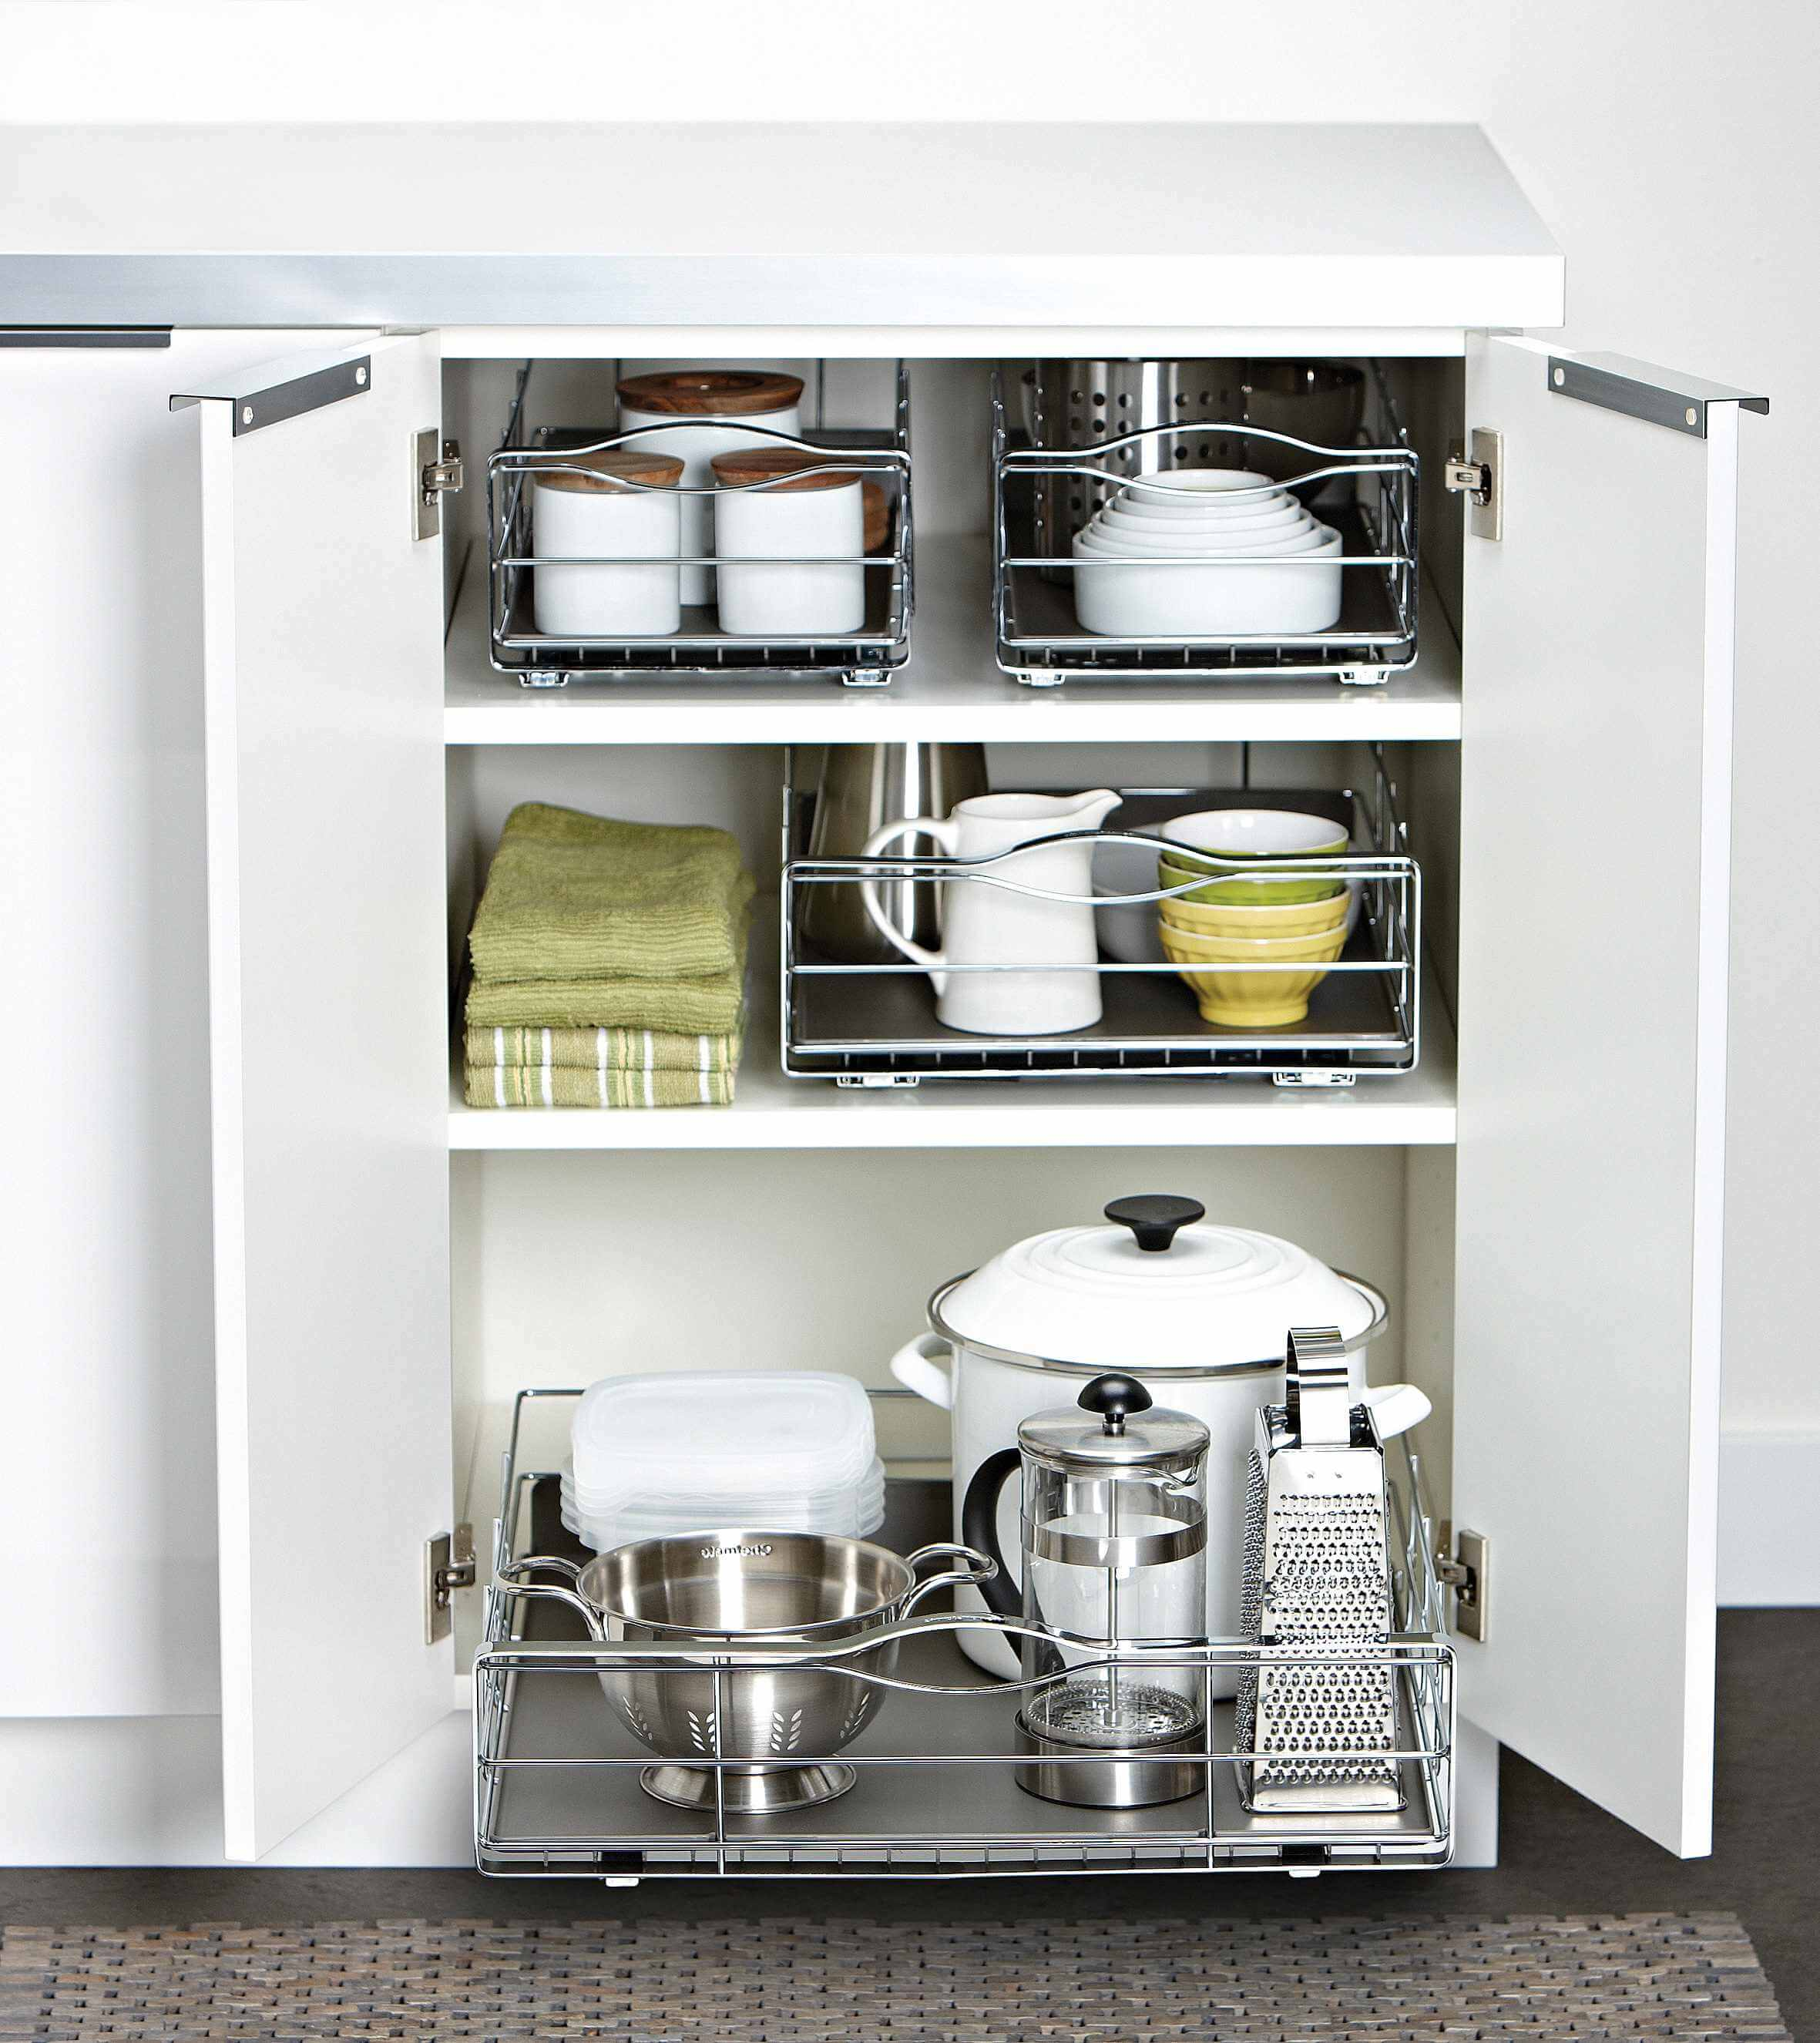 7 Reasons Upper Kitchen Cabinets Beat Open Shelving